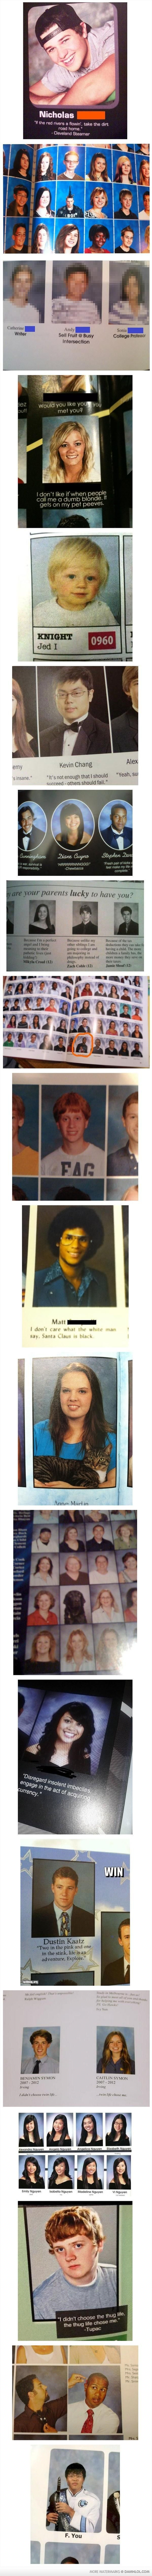 Great Moments In Yearbook